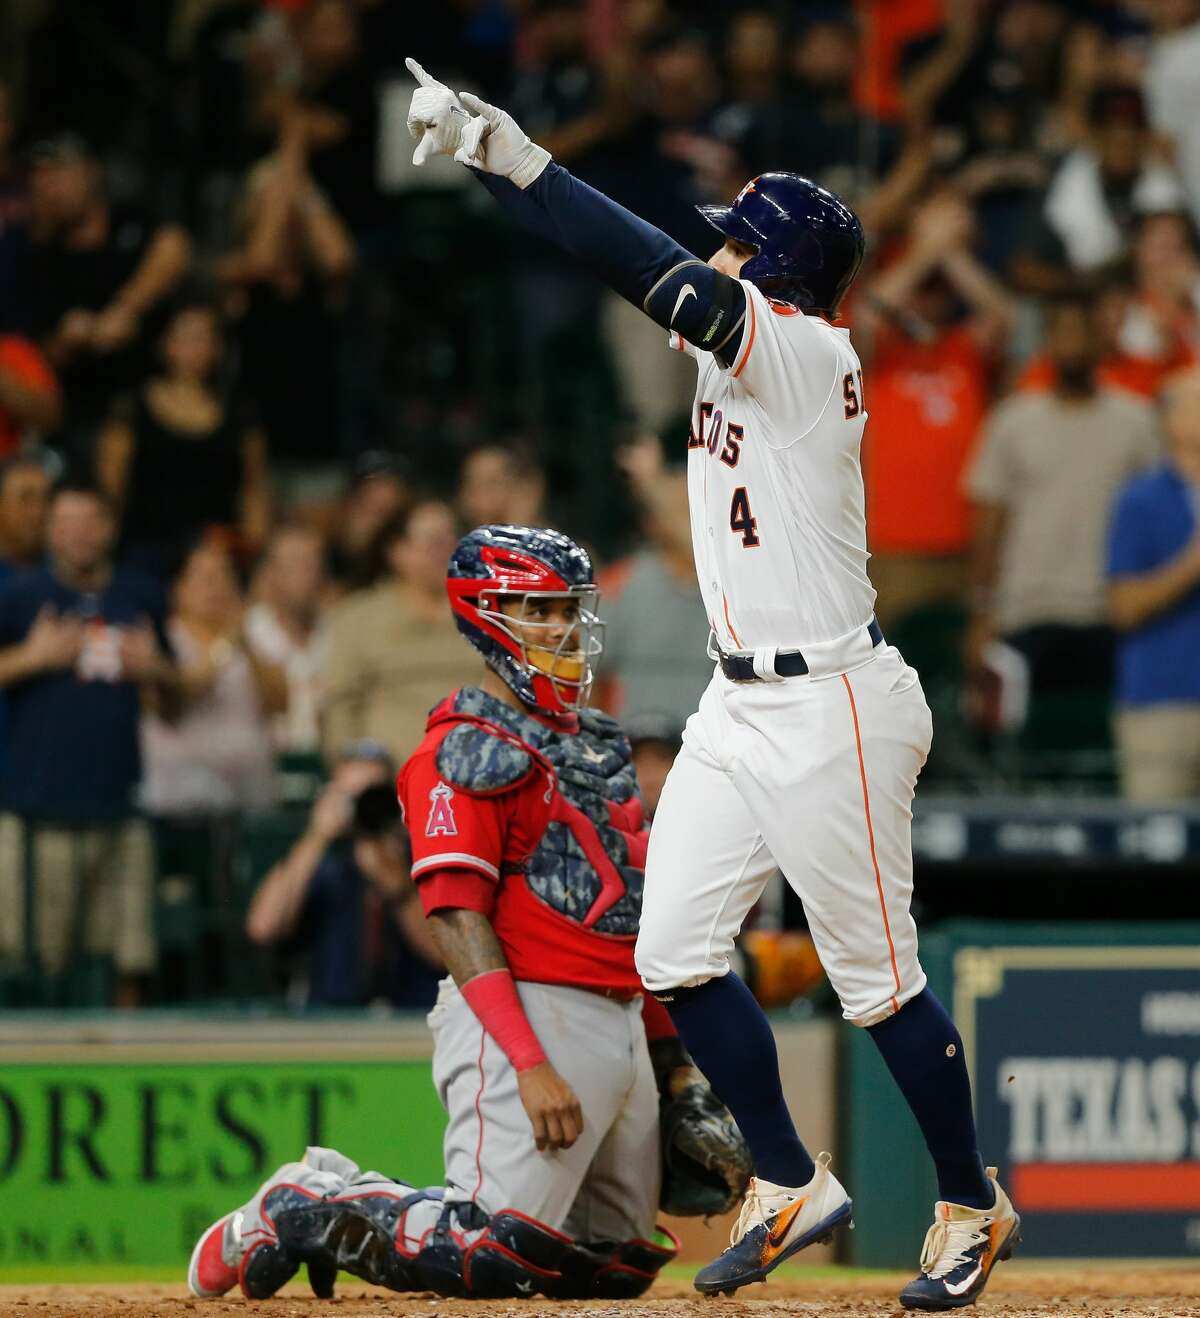 Springer hit a solo home run in the bottom of the seventh inning to bring the Astros within a run of the Angels, but Los Angeles scored another run in the eighth inning and held on to win 7-5.